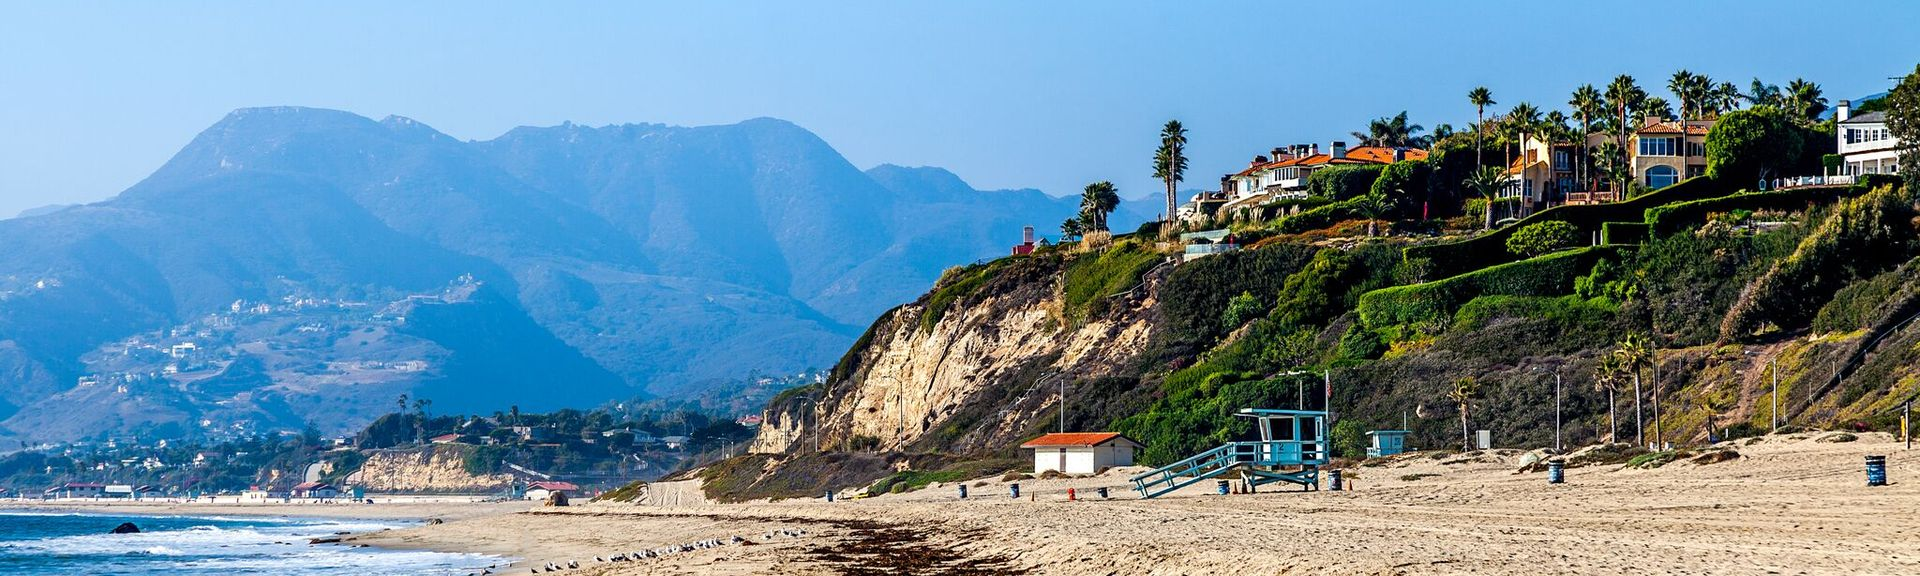 Malibu, Californien, USA